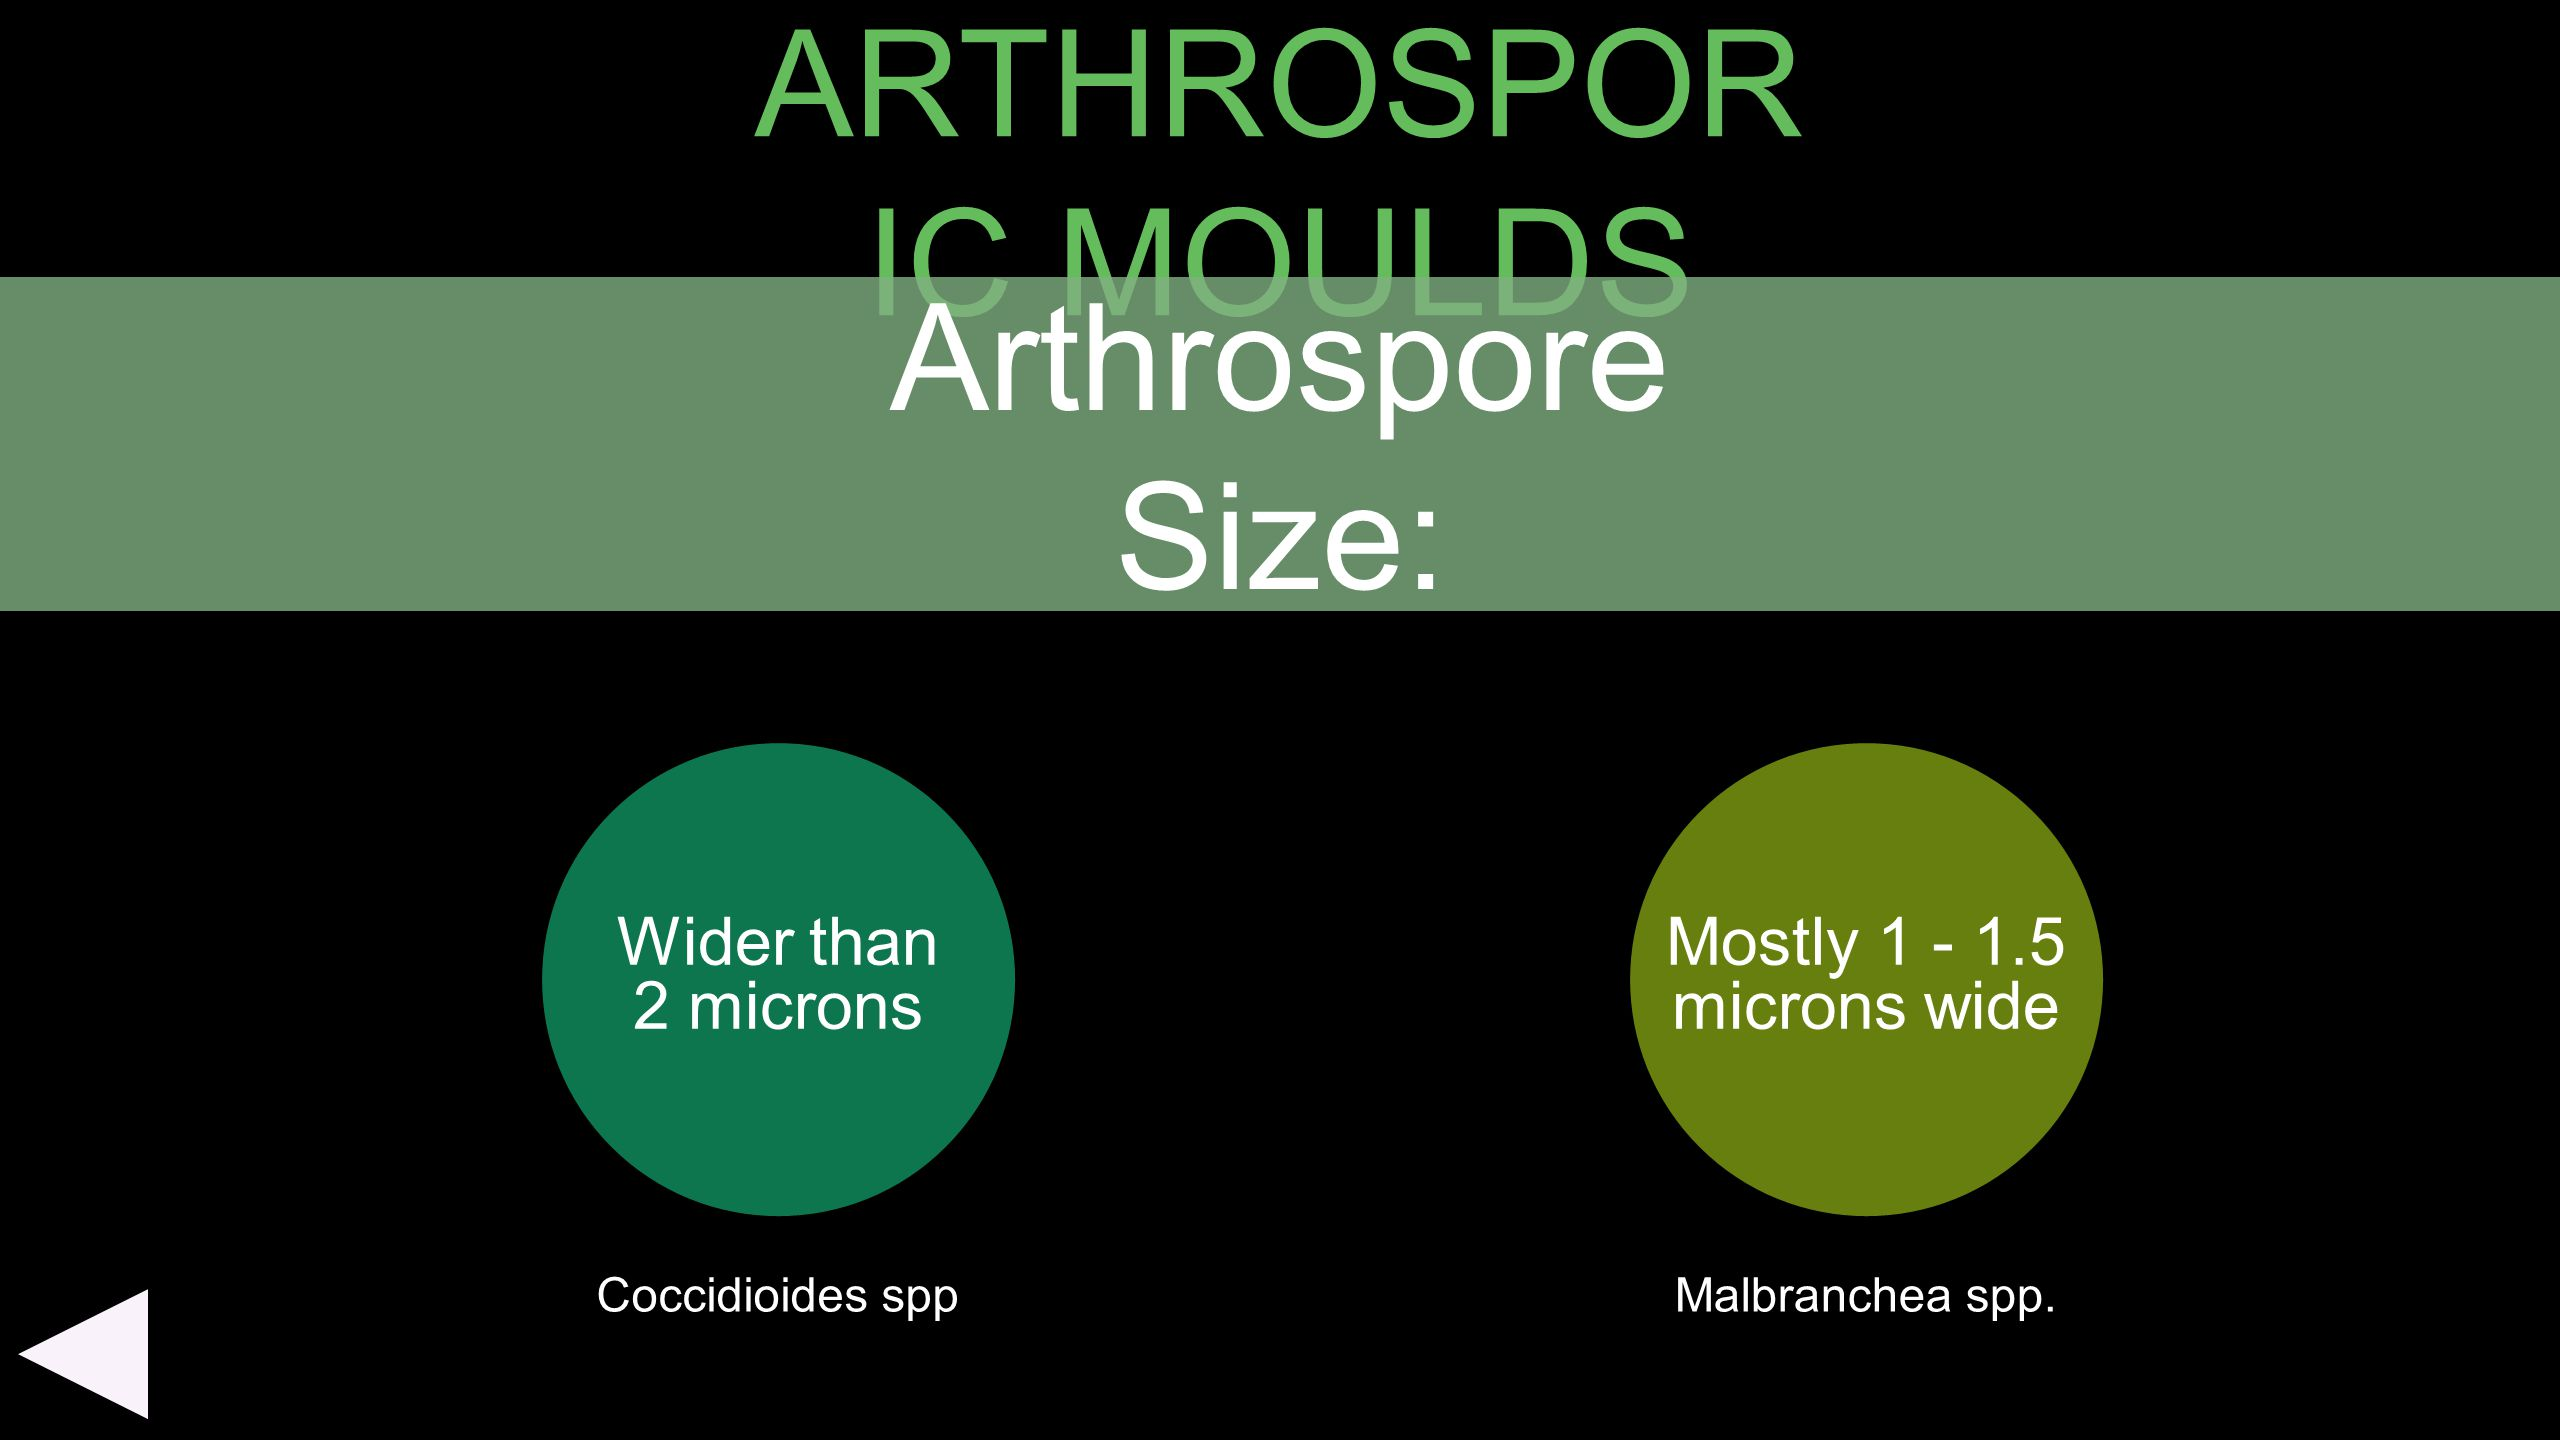 ARTHROSPOR IC MOULDS Wider than 2 microns Mostly 1 - 1.5 microns wide Arthrospore Size: Coccidioides sppMalbranchea spp.